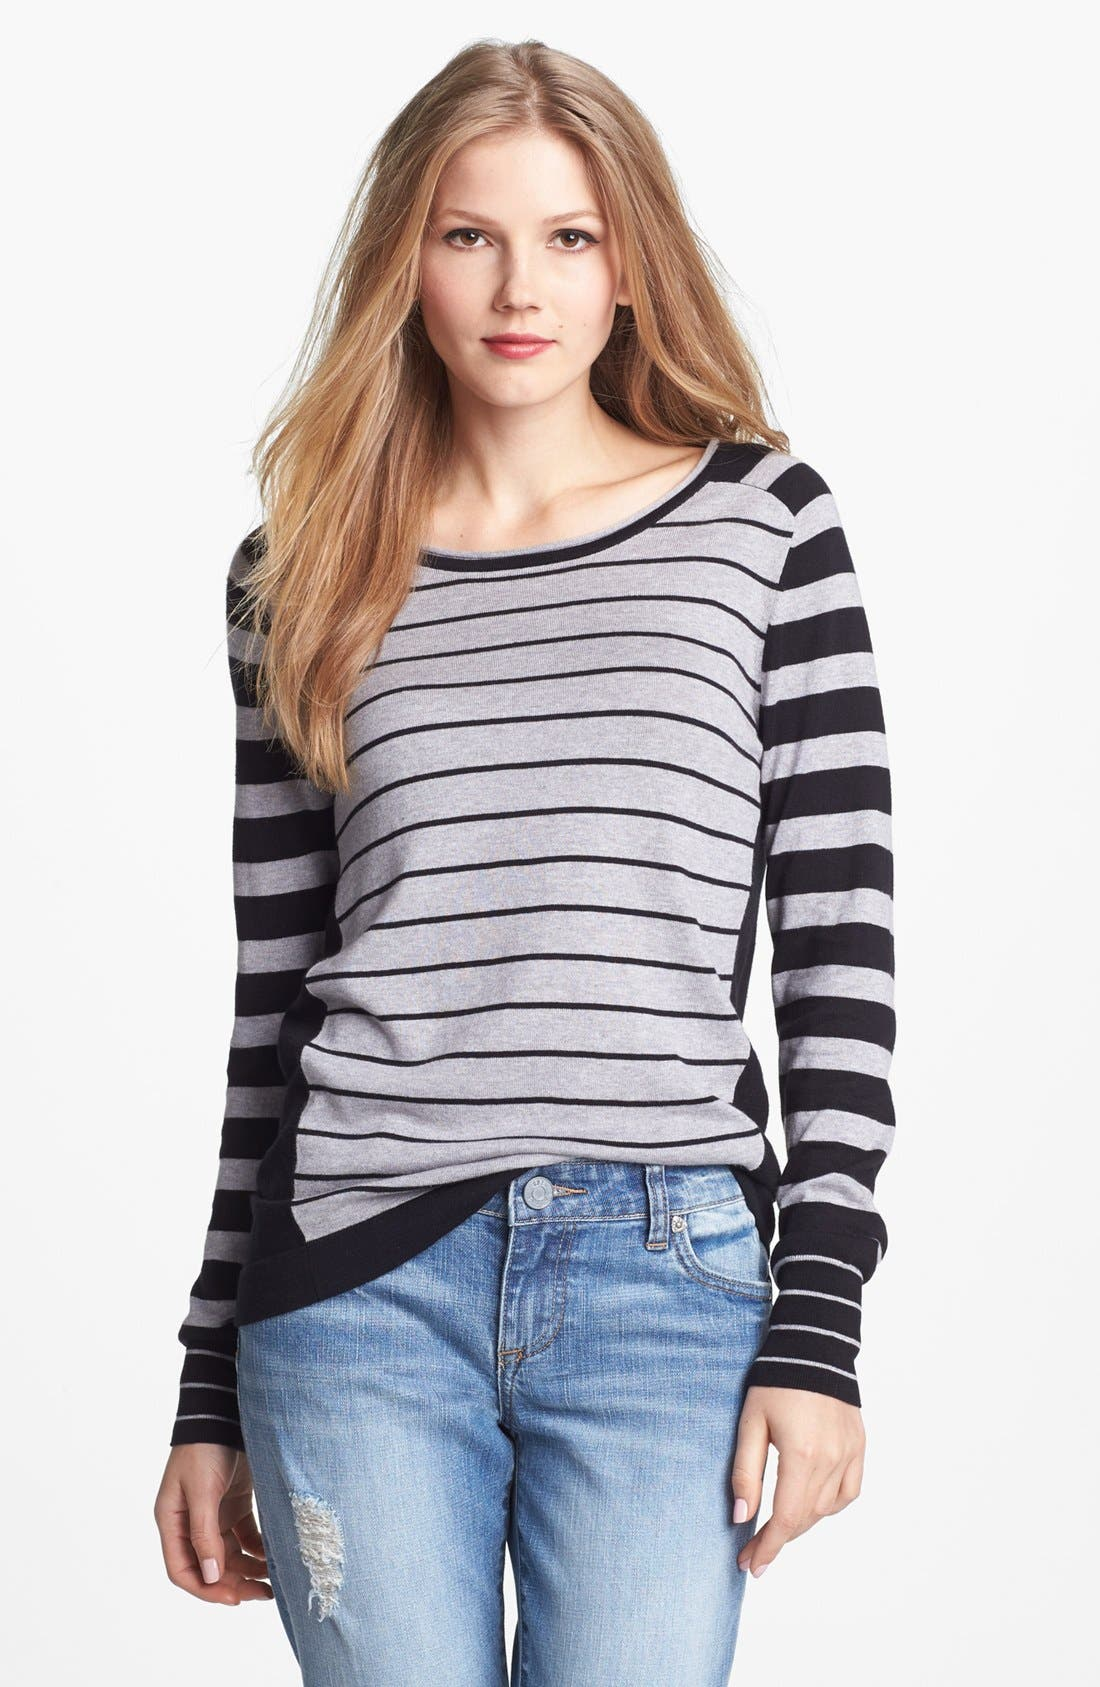 Alternate Image 1 Selected - Vince Camuto Mixed Stripe Colorblock Sweater